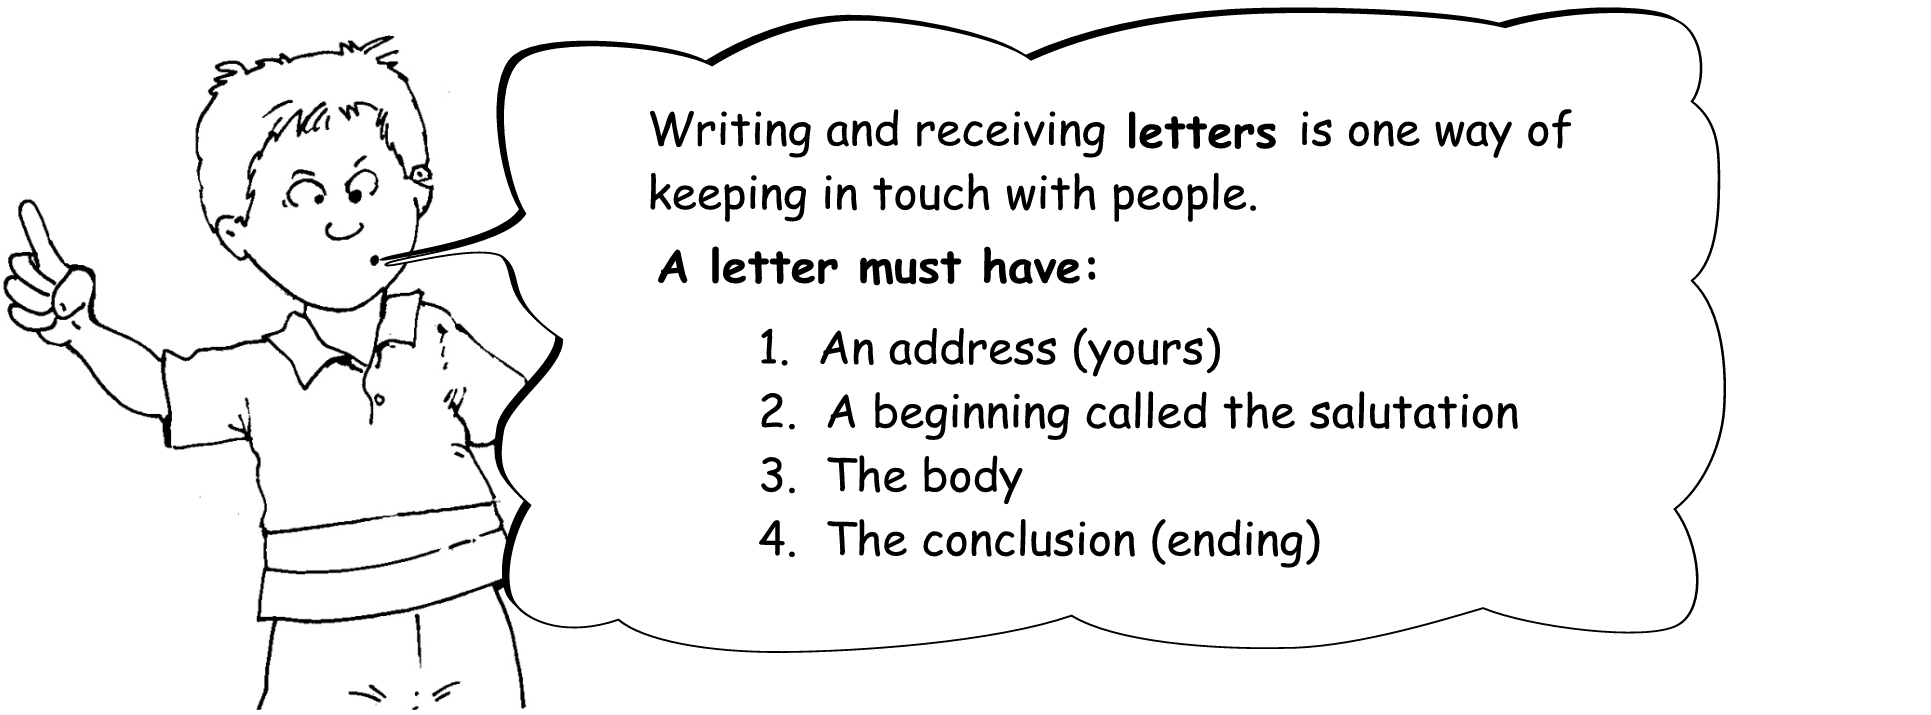 How to write a letter to your friend choice image letter format a letter to my sport hero expocarfo choice image stopboris Gallery